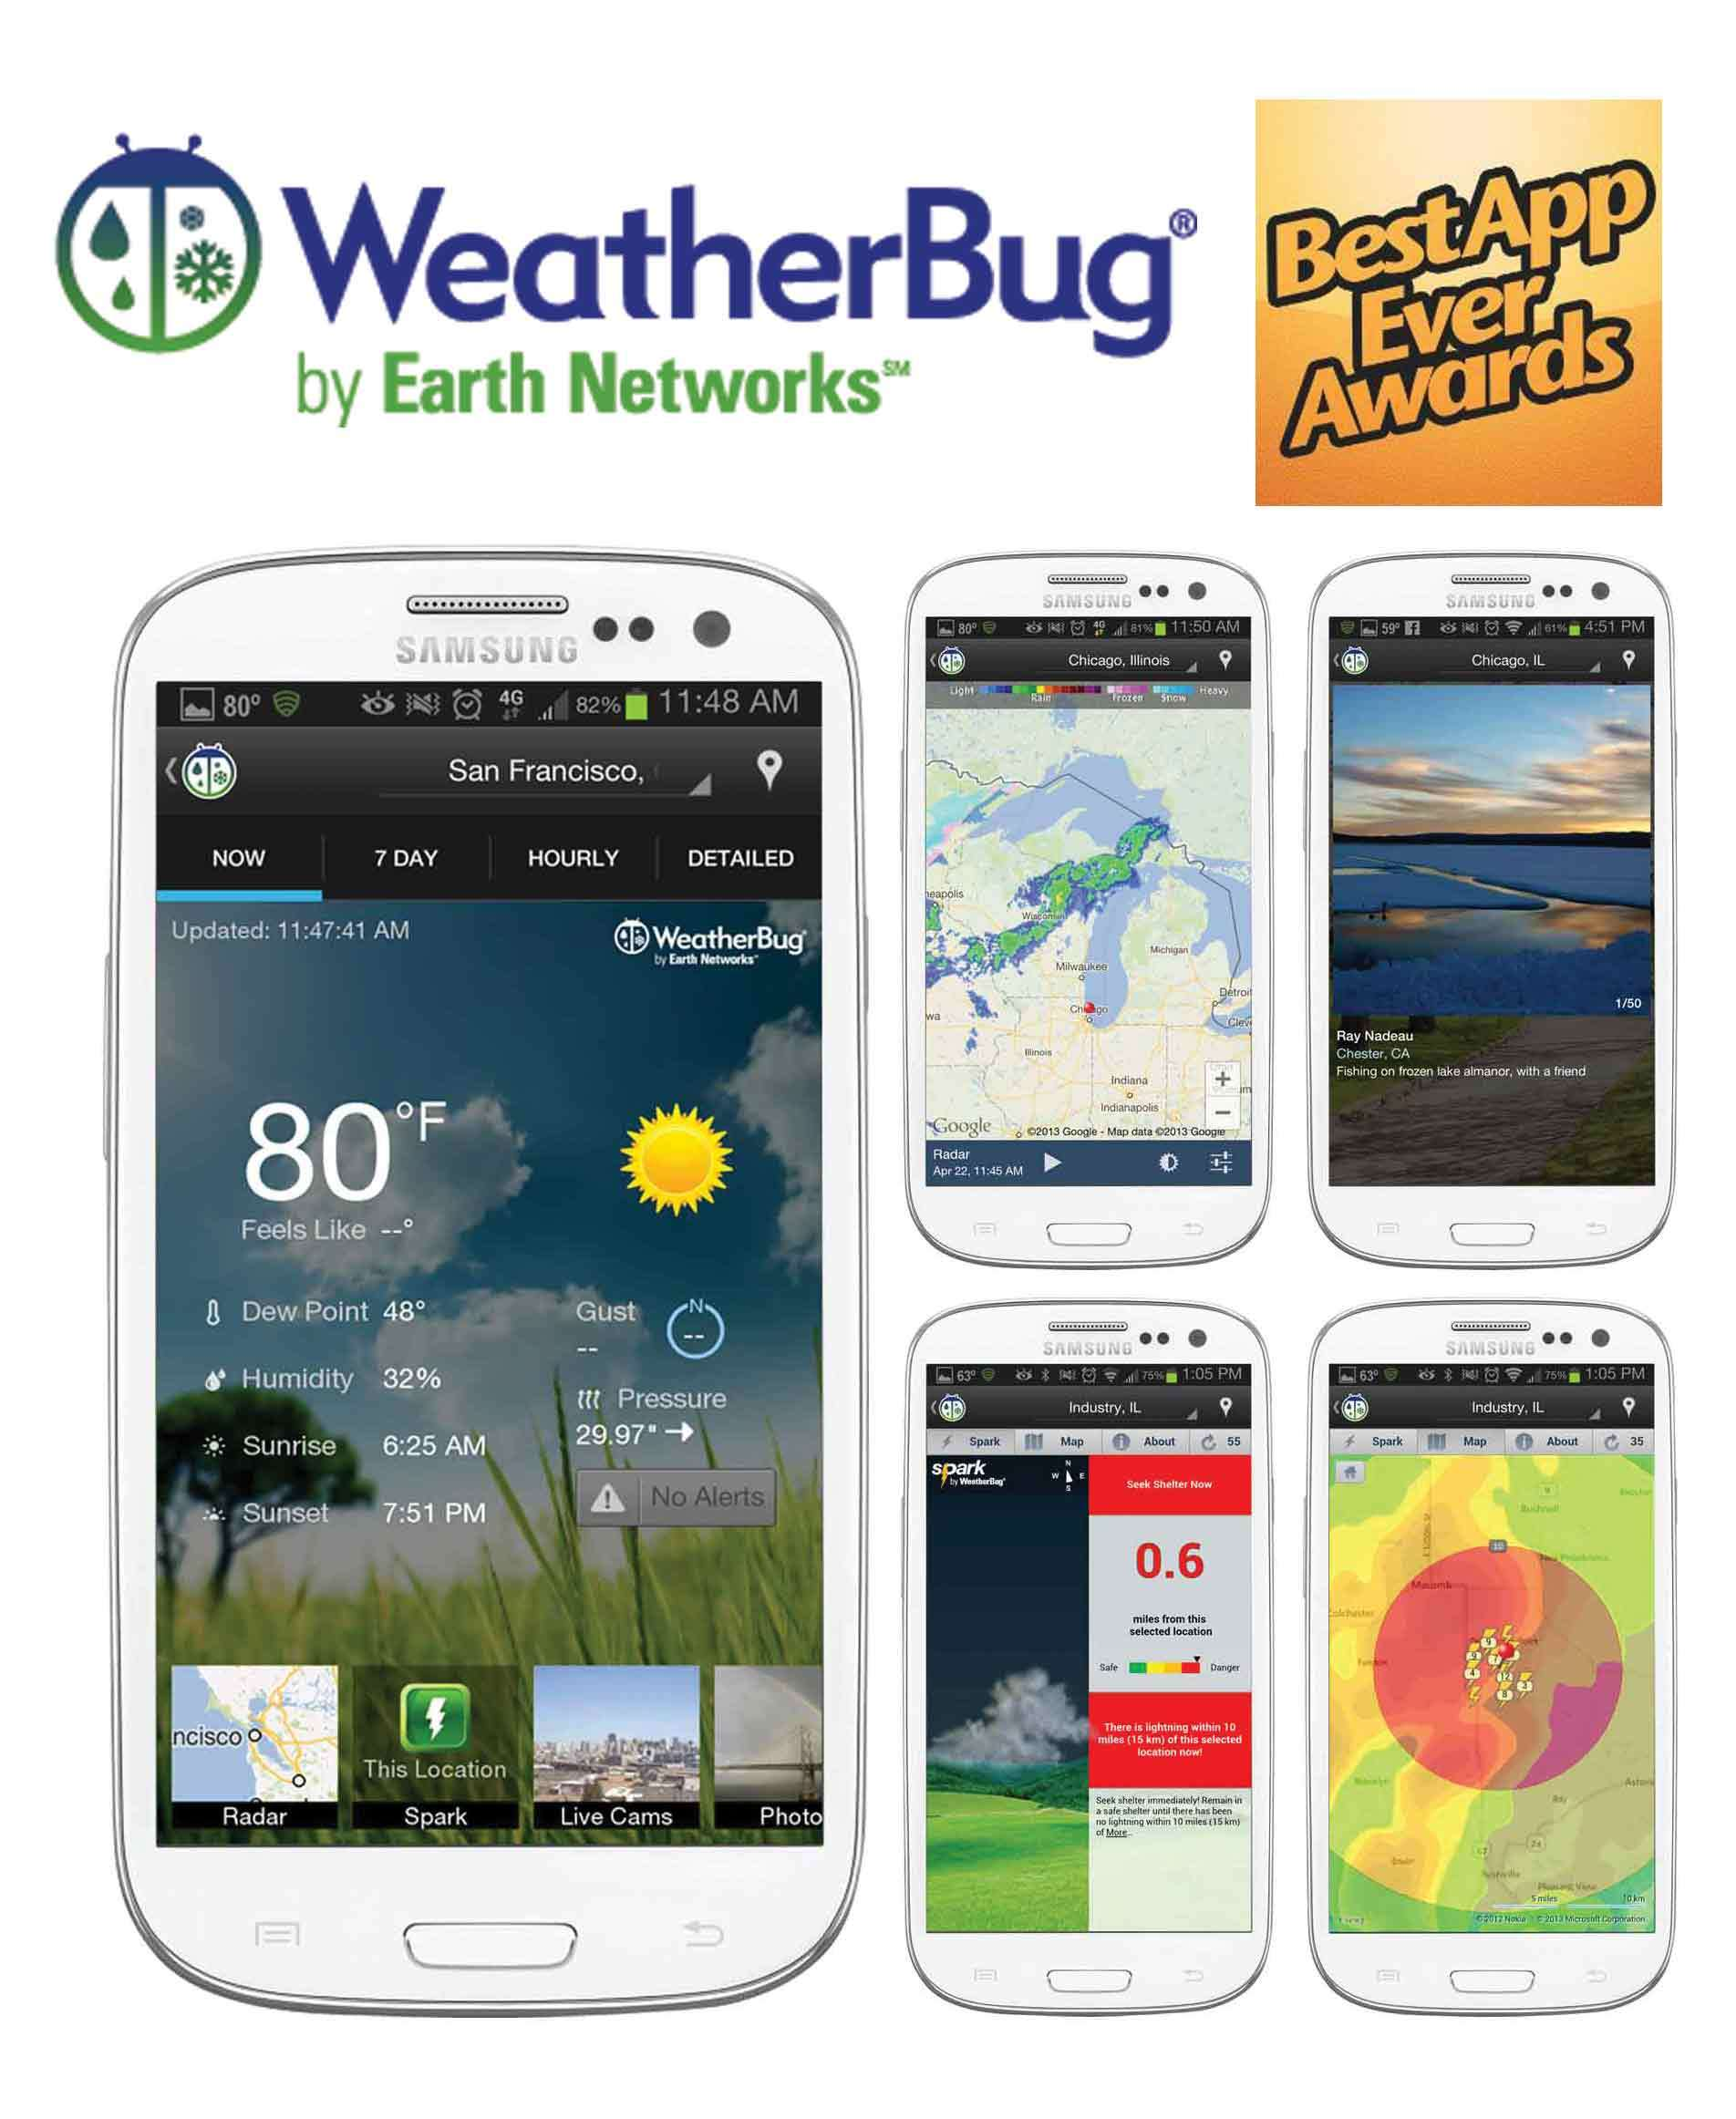 WeatherBug for Android Named Best Weather App Ever by Popular Vote